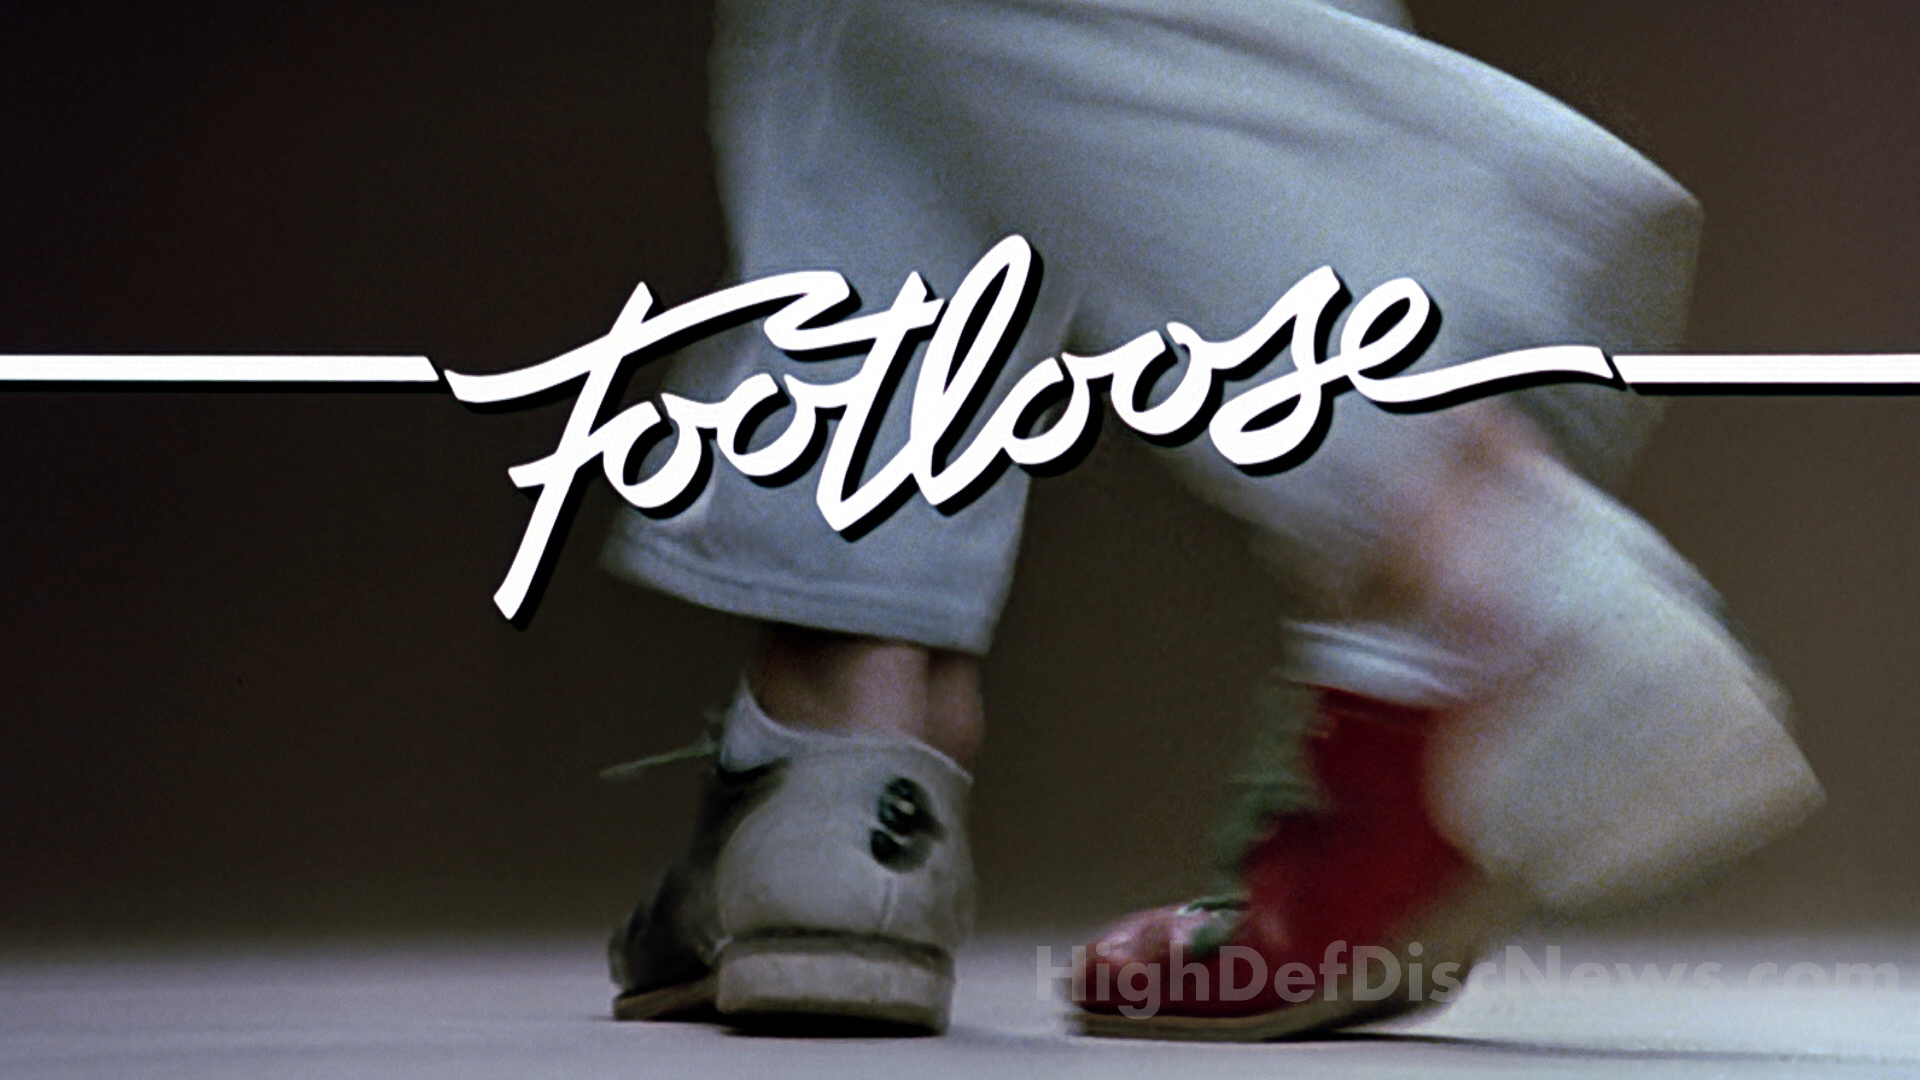 Best 51 Footloose Wallpaper on HipWallpaper Footloose Wallpaper 1920x1080